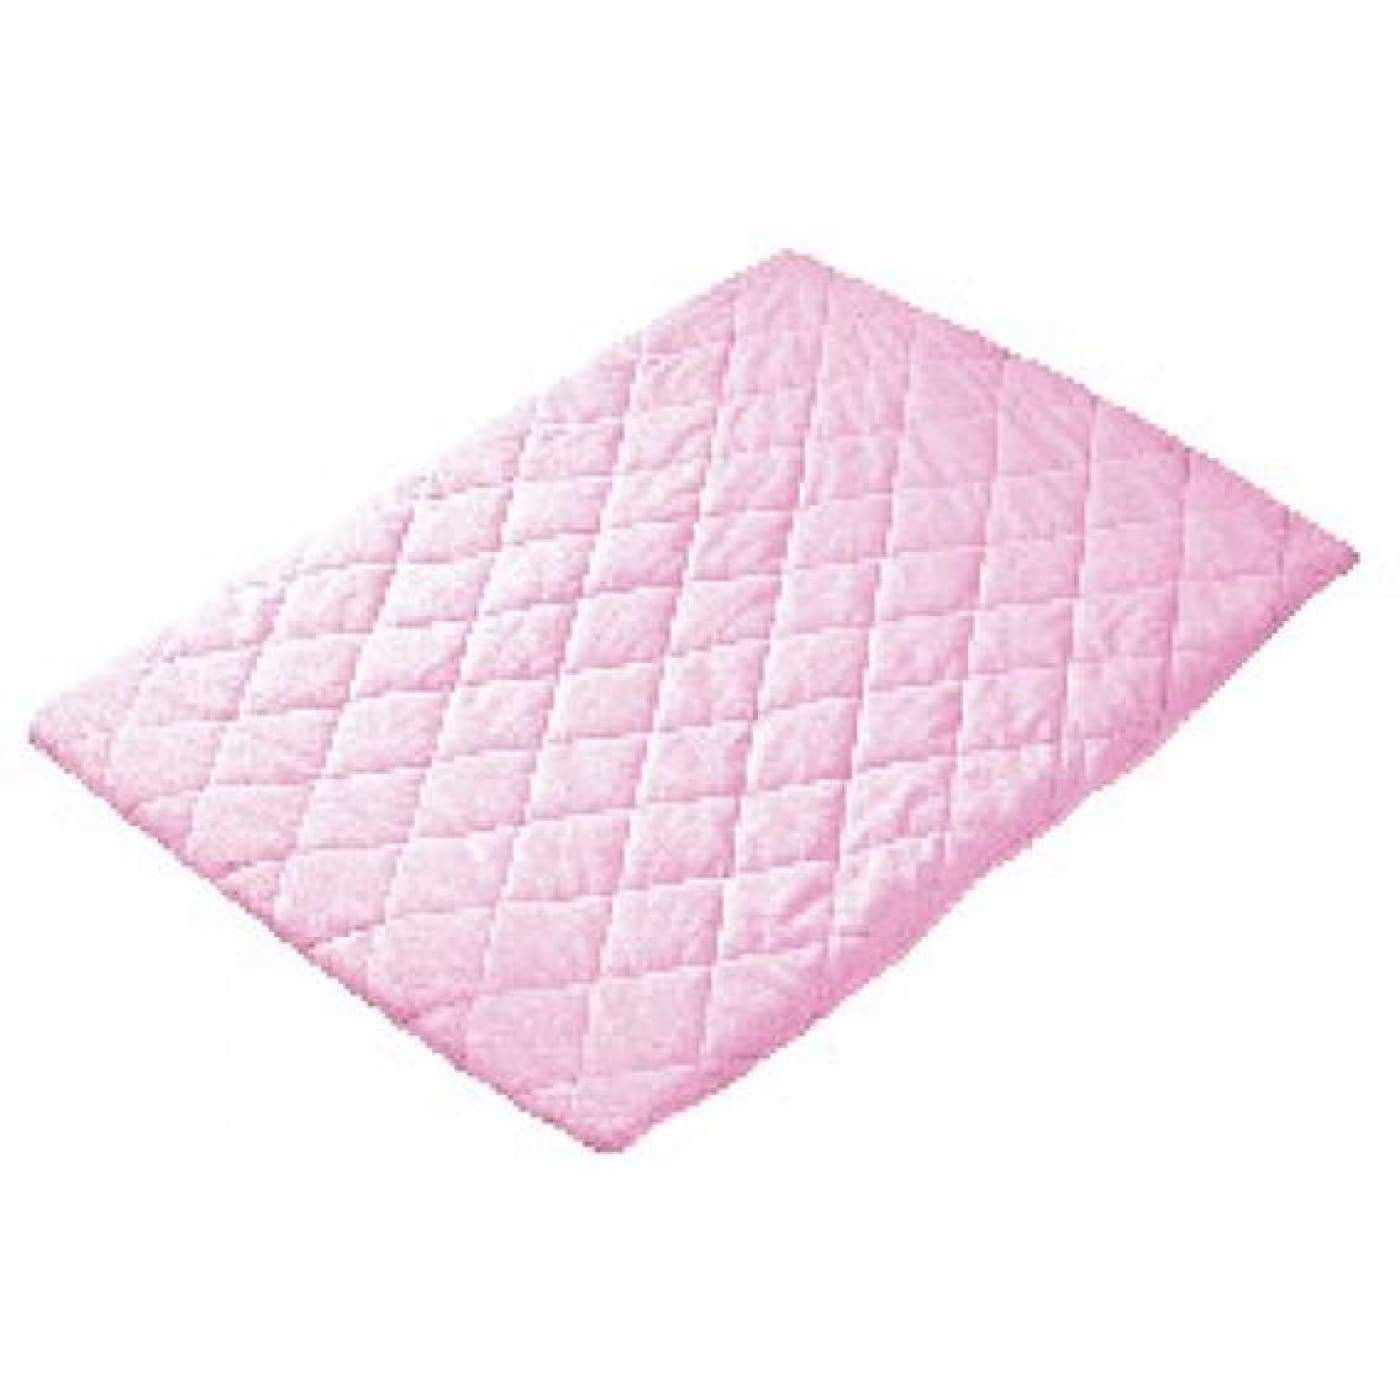 Playette Travel Cot Quilted/Padded Sheet - Pink - ON THE GO - PORTACOTS/ACCESSORIES